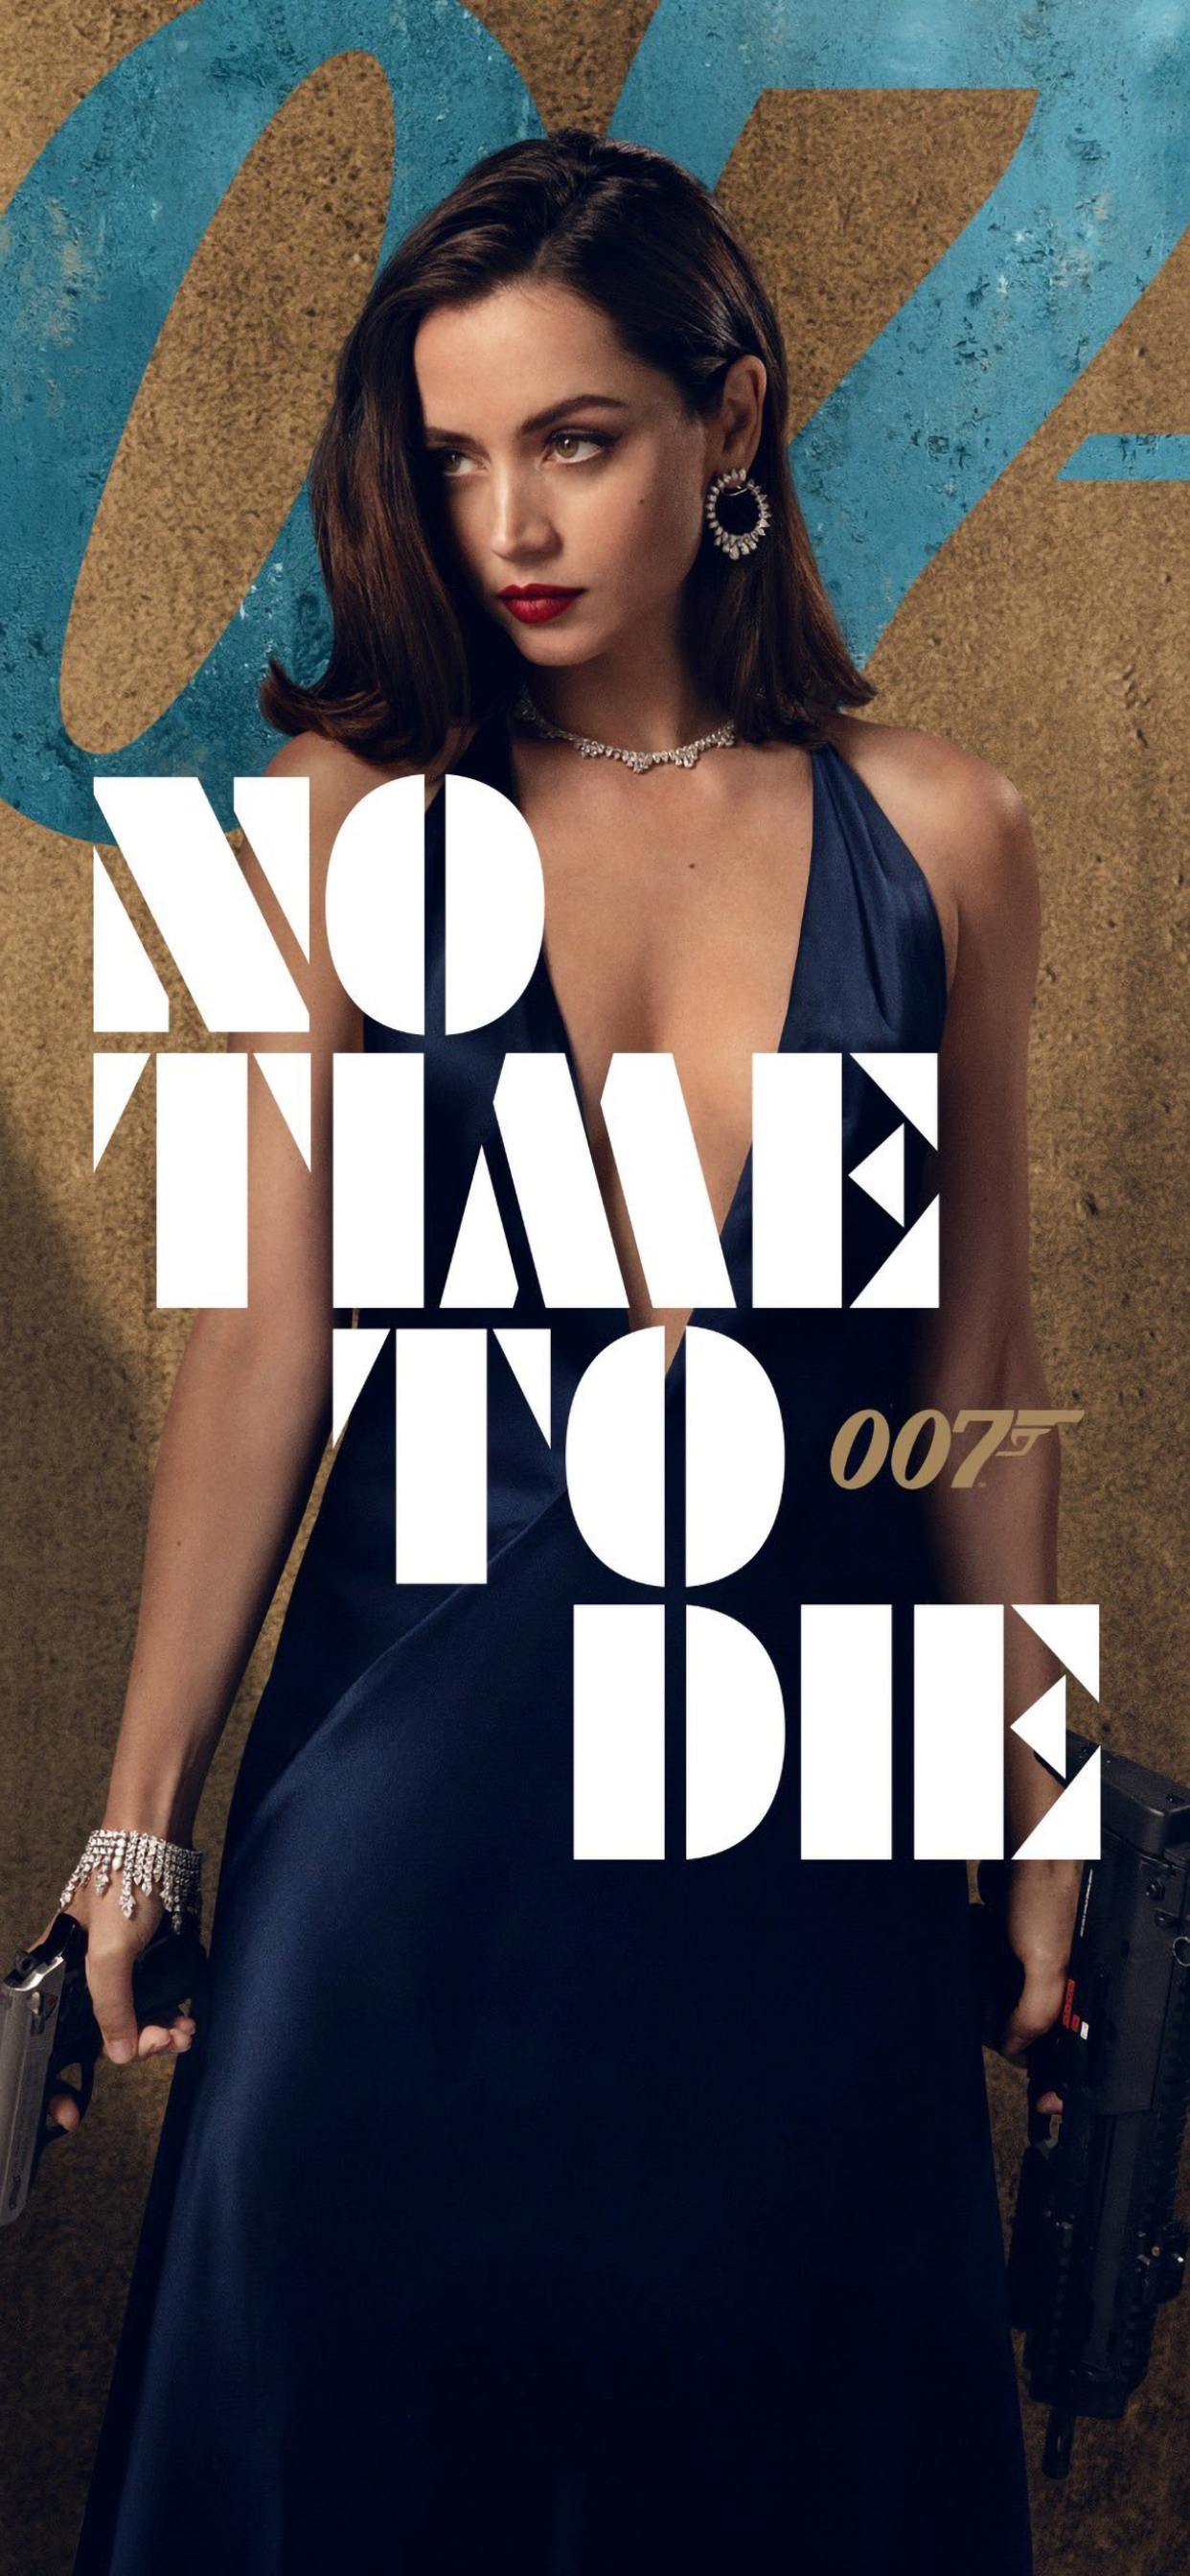 1242x26 Ana De Armas From No Time To Die Movie Iphone Xs Max Wallpaper Hd Movies 4k Wallpapers Images Photos And Background